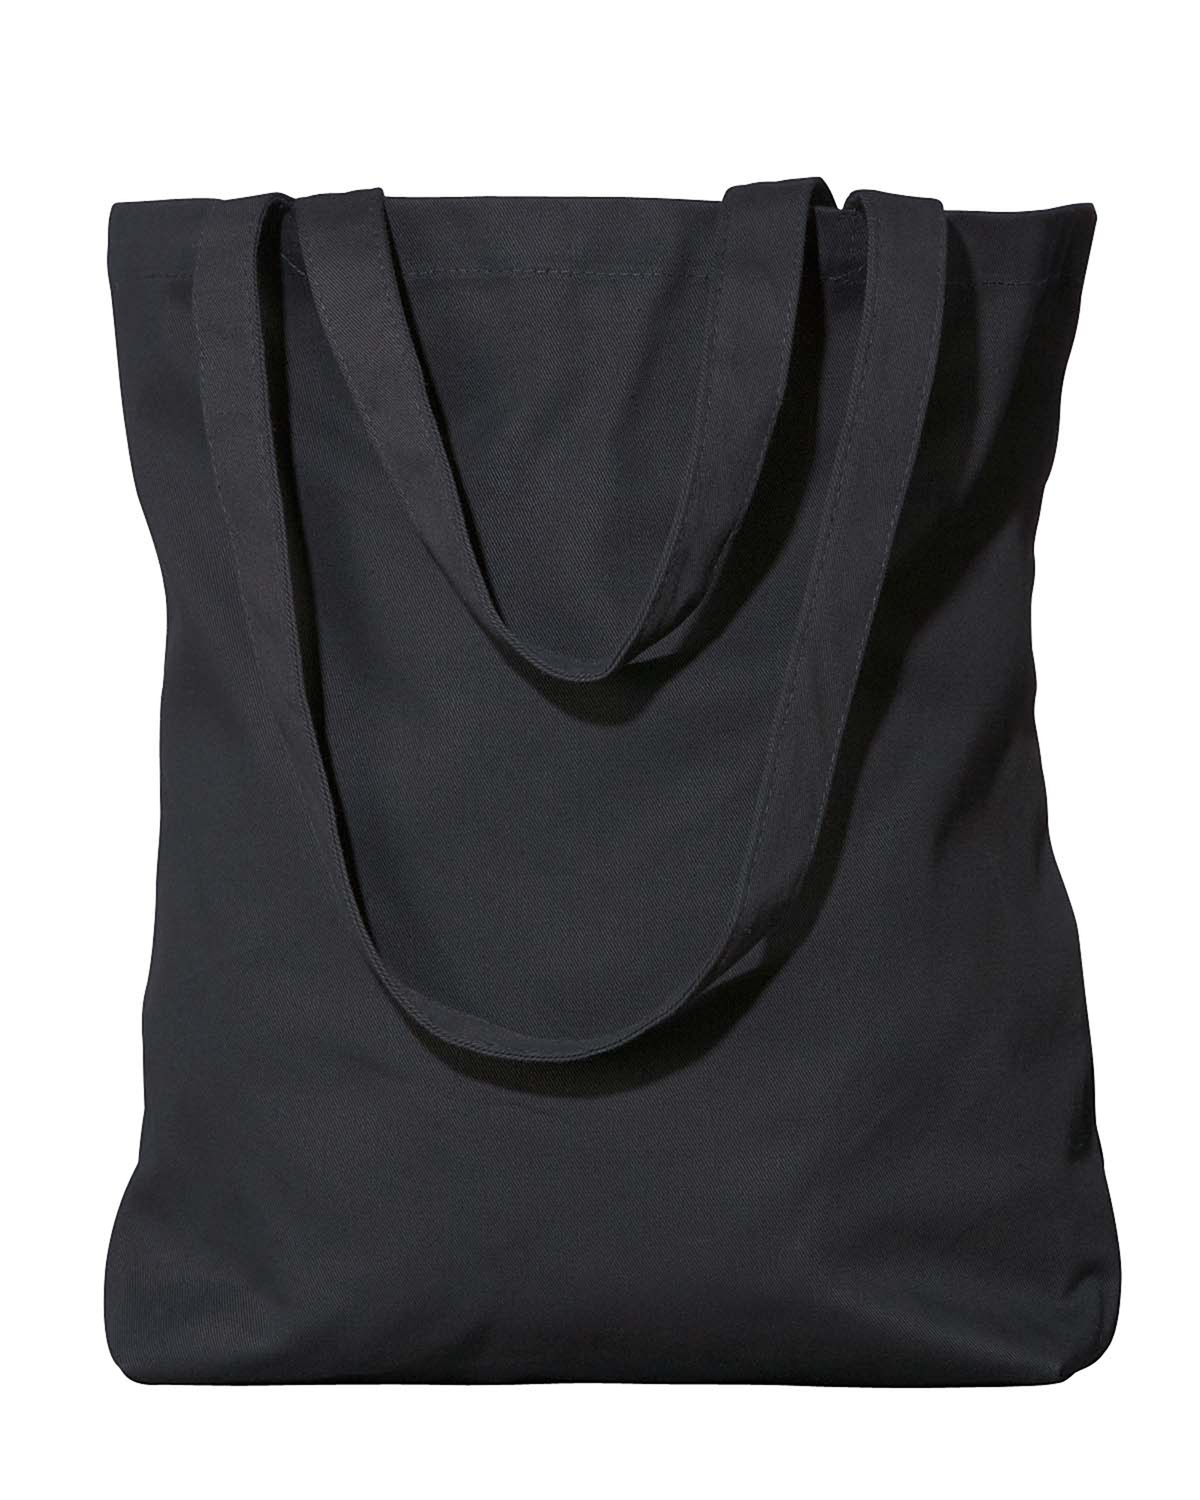 Econscious EC8000 - Organic Cotton Twill Every Day Tote